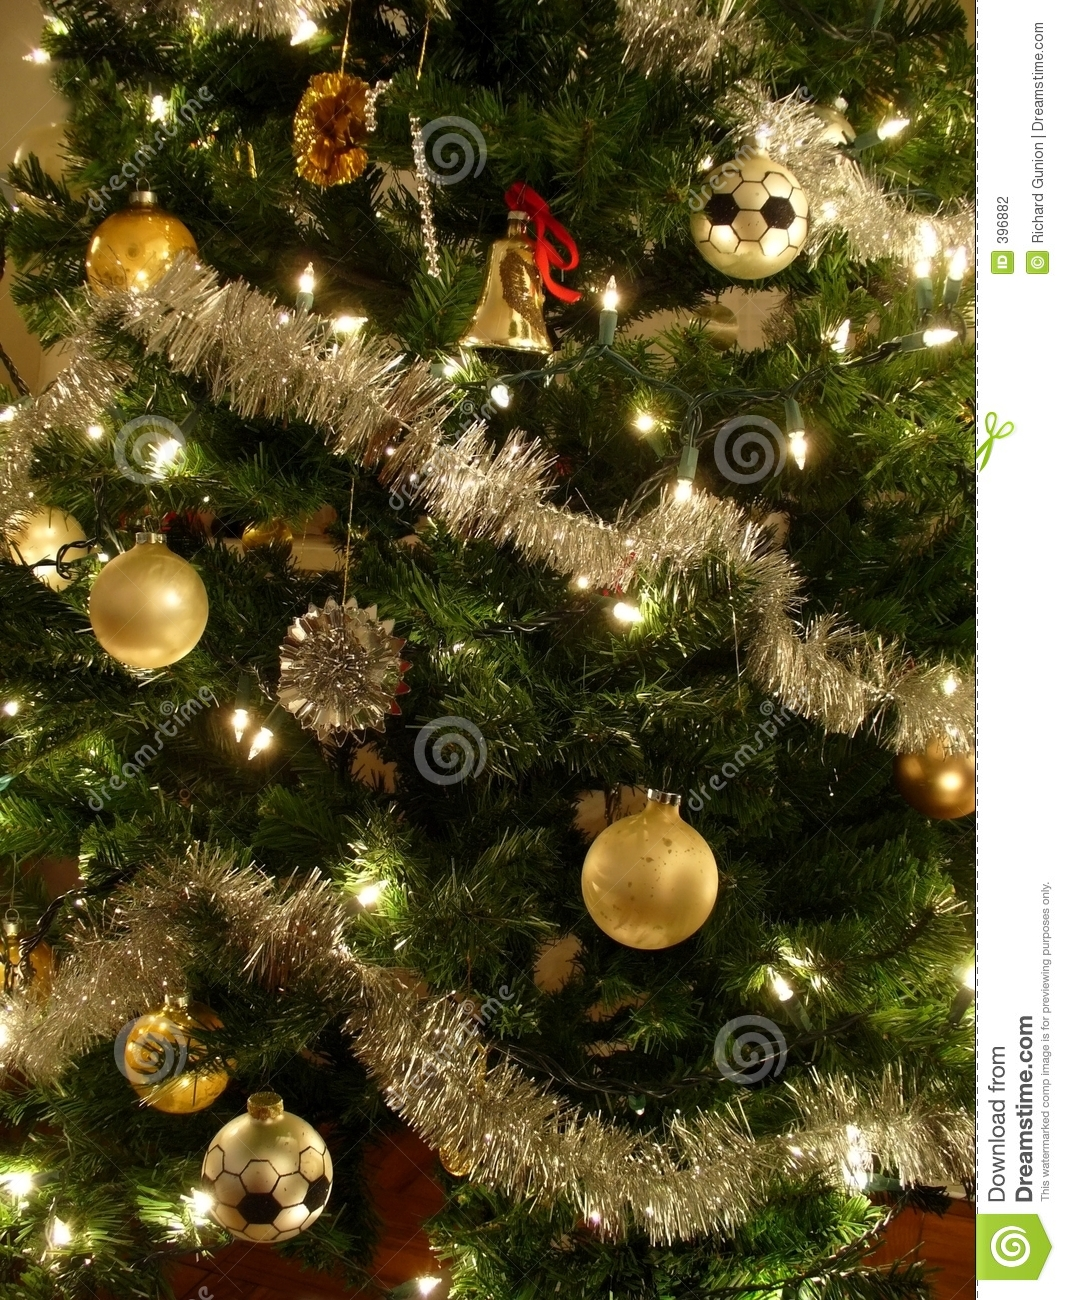 gold and silver christmas tree - Silver And Gold Christmas Tree Decorations